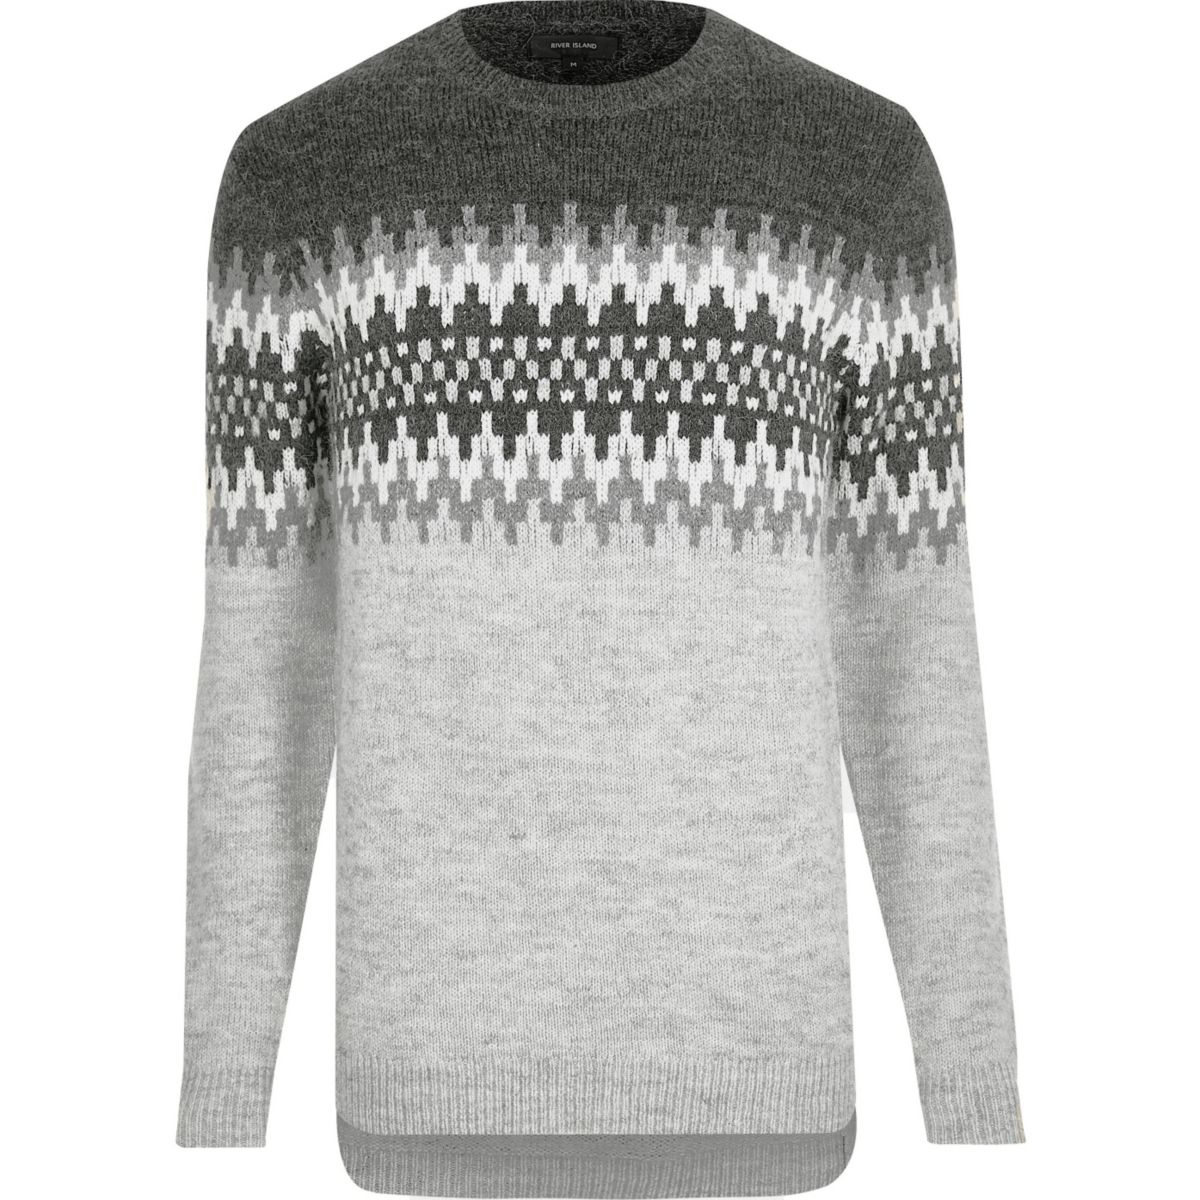 Light grey fairisle knit jumper